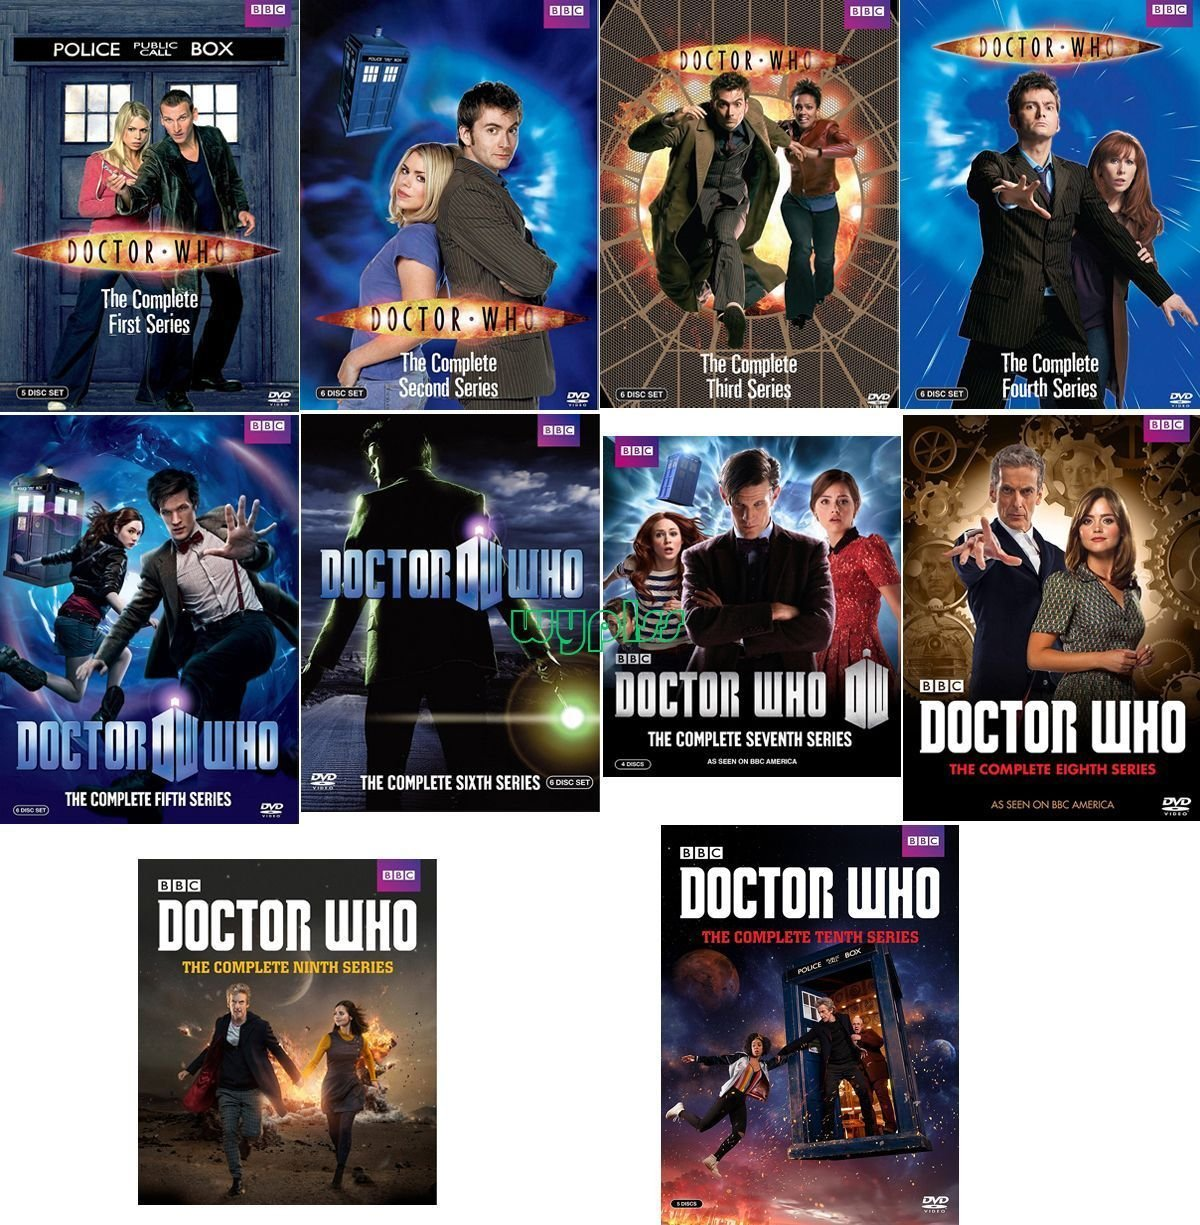 Doctor Who -The Complete Series Collection, DVD (Series Seasons 1-10 DVD 55-Disc Set, 1,2,3,4,5,6,7,8,9,10 Bundle) USA Format Region 1